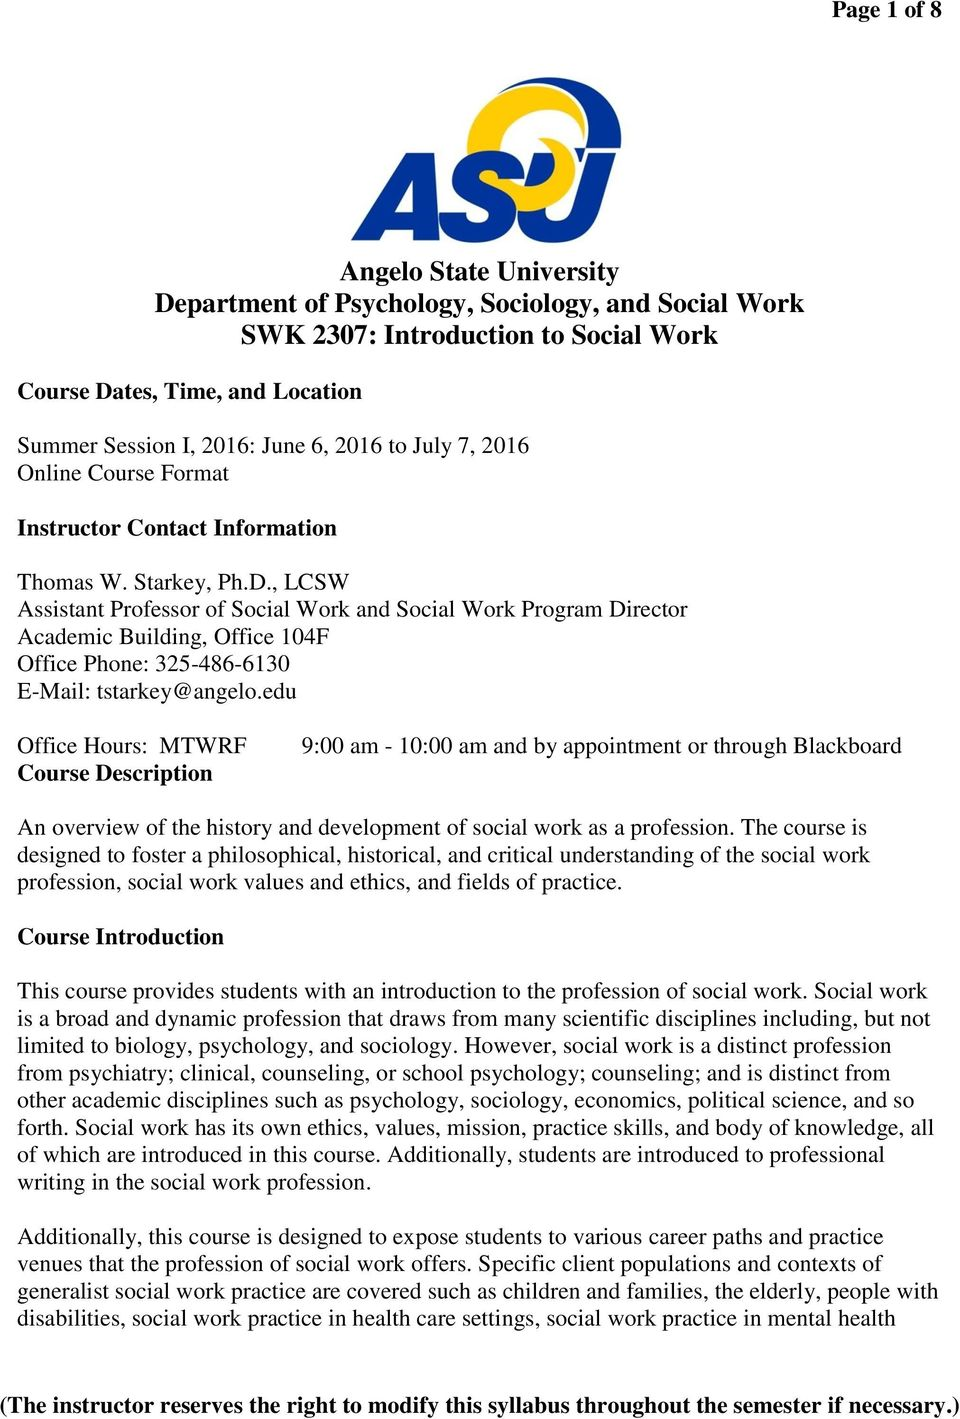 , LCSW Assistant Professor of Social Work and Social Work Program Director Academic Building, Office 104F Office Phone: 325-486-6130 E-Mail: tstarkey@angelo.